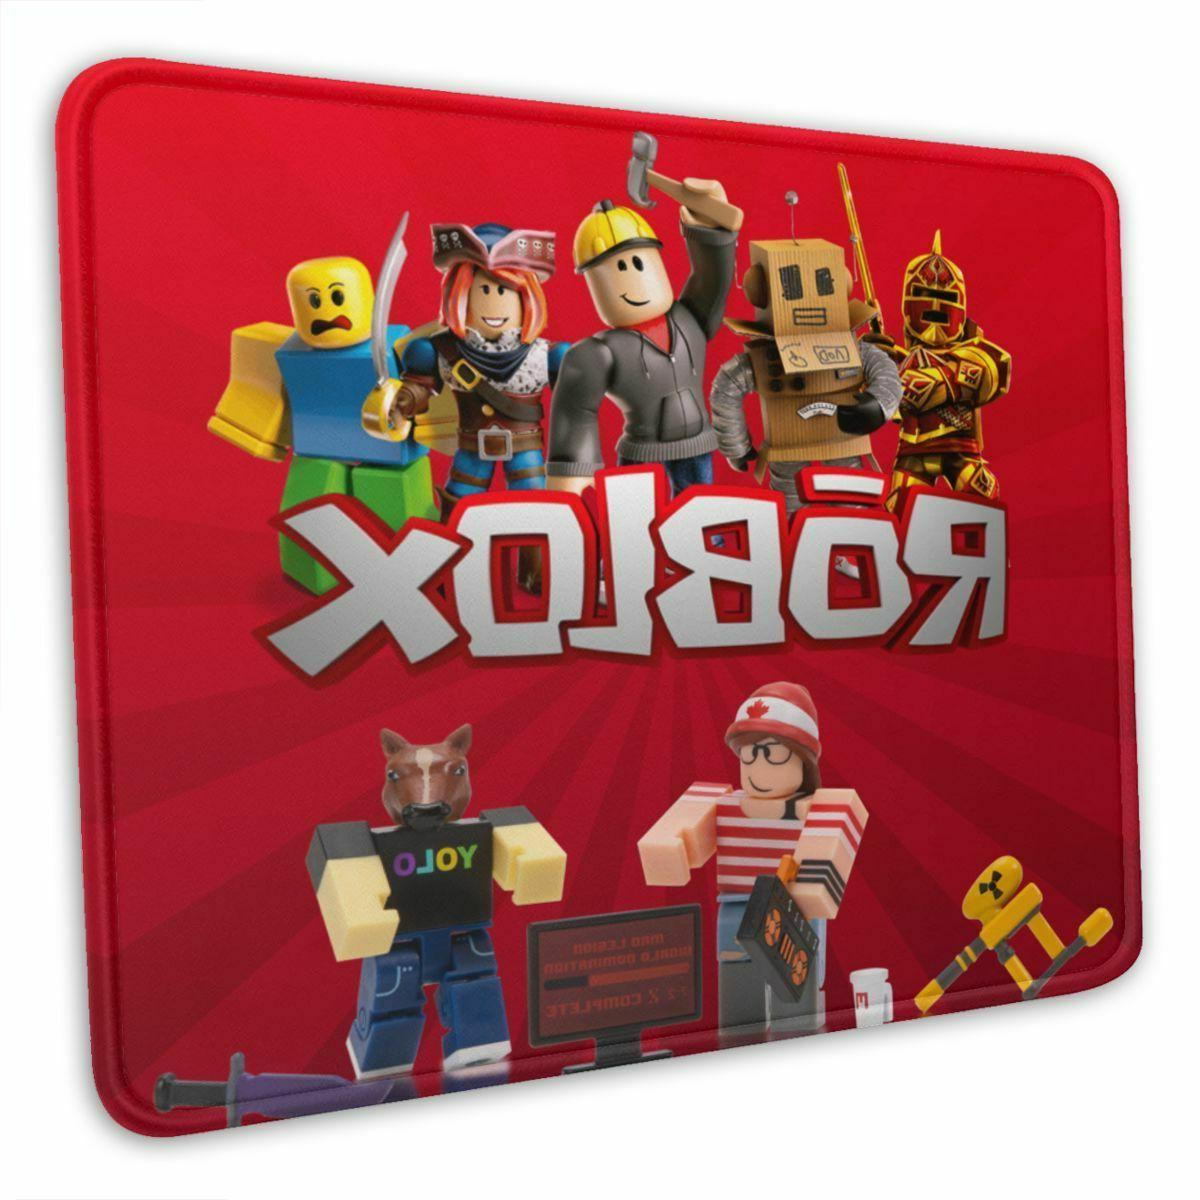 Roblox Game Non-slip Pad Thick Rubber Laptop Computer Mat 10 x 12